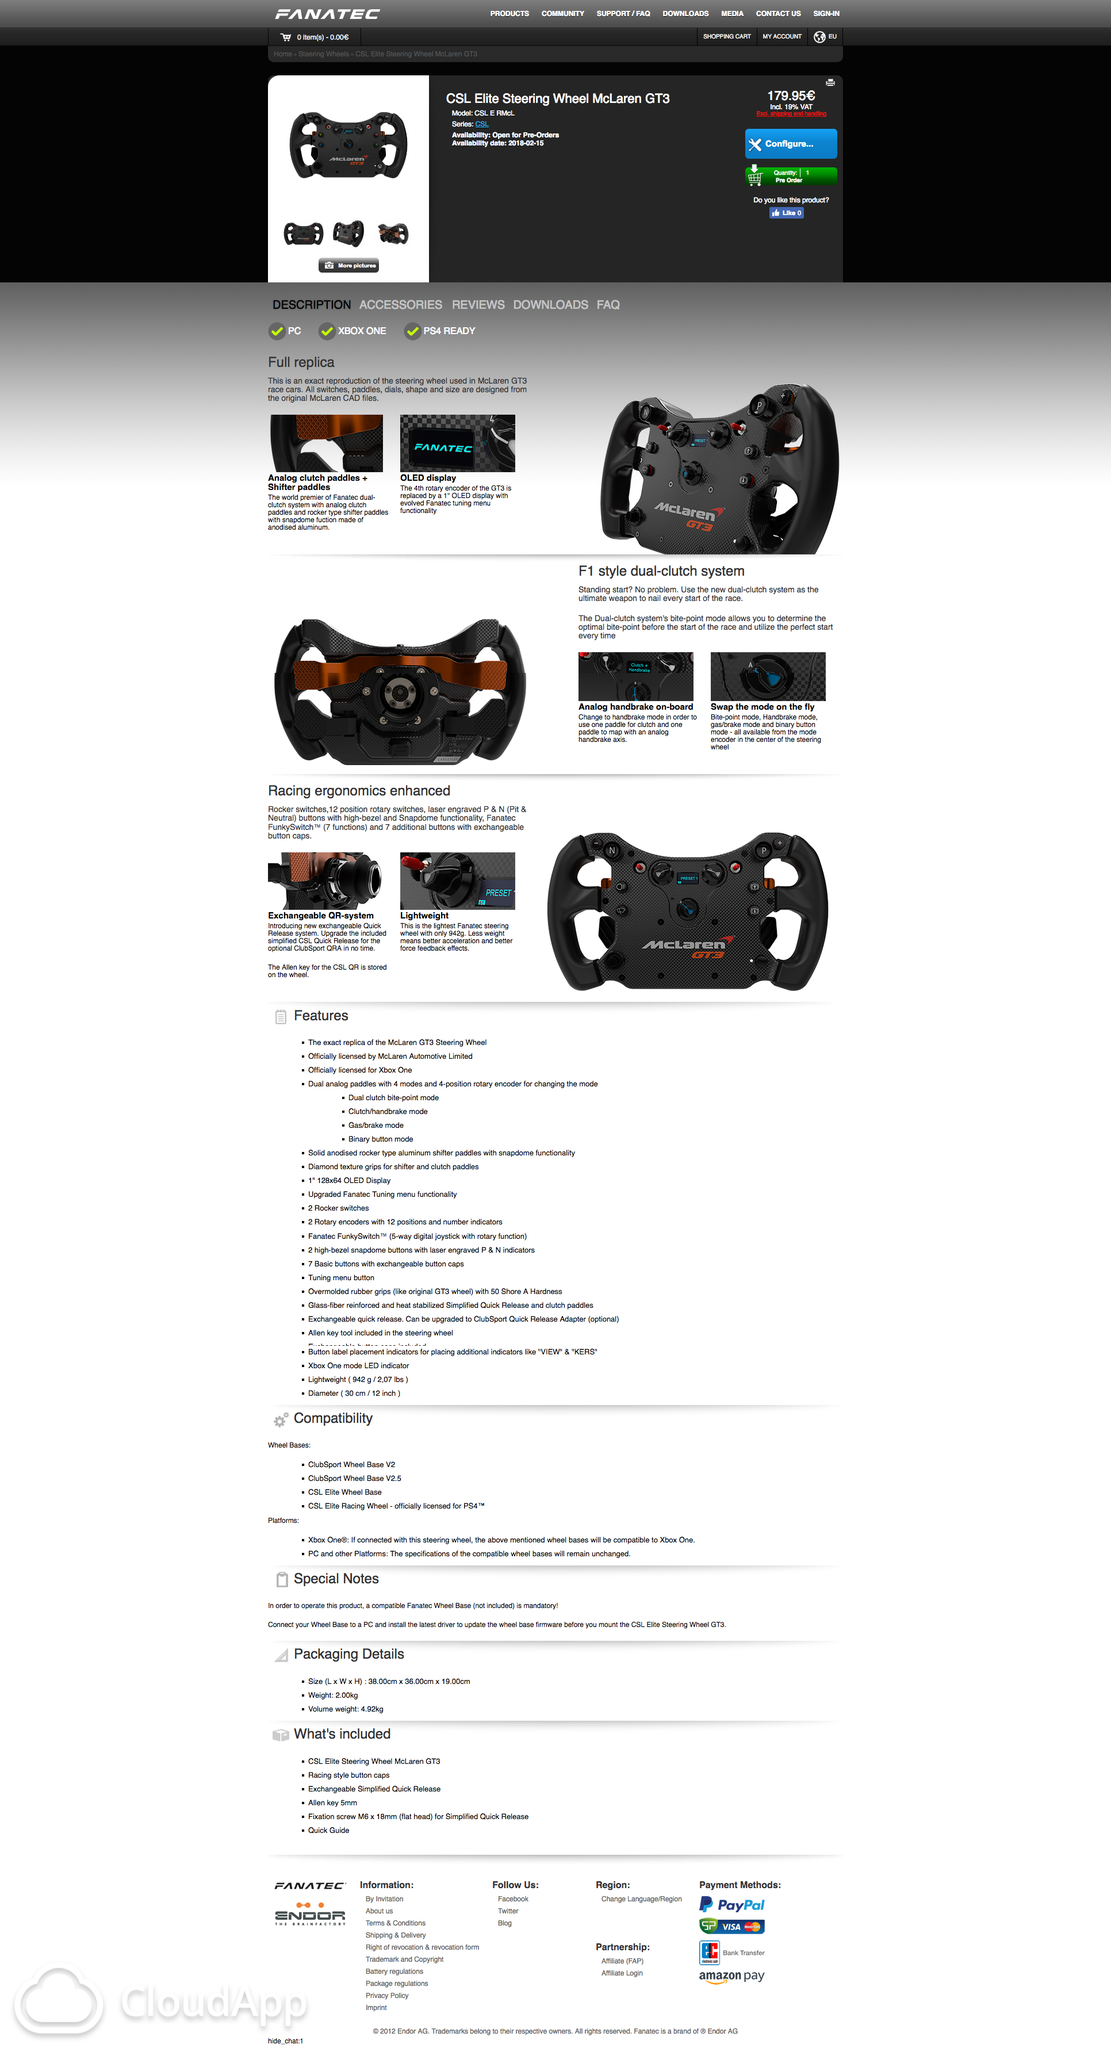 Fanatec McLaren GT rim product page screenshot